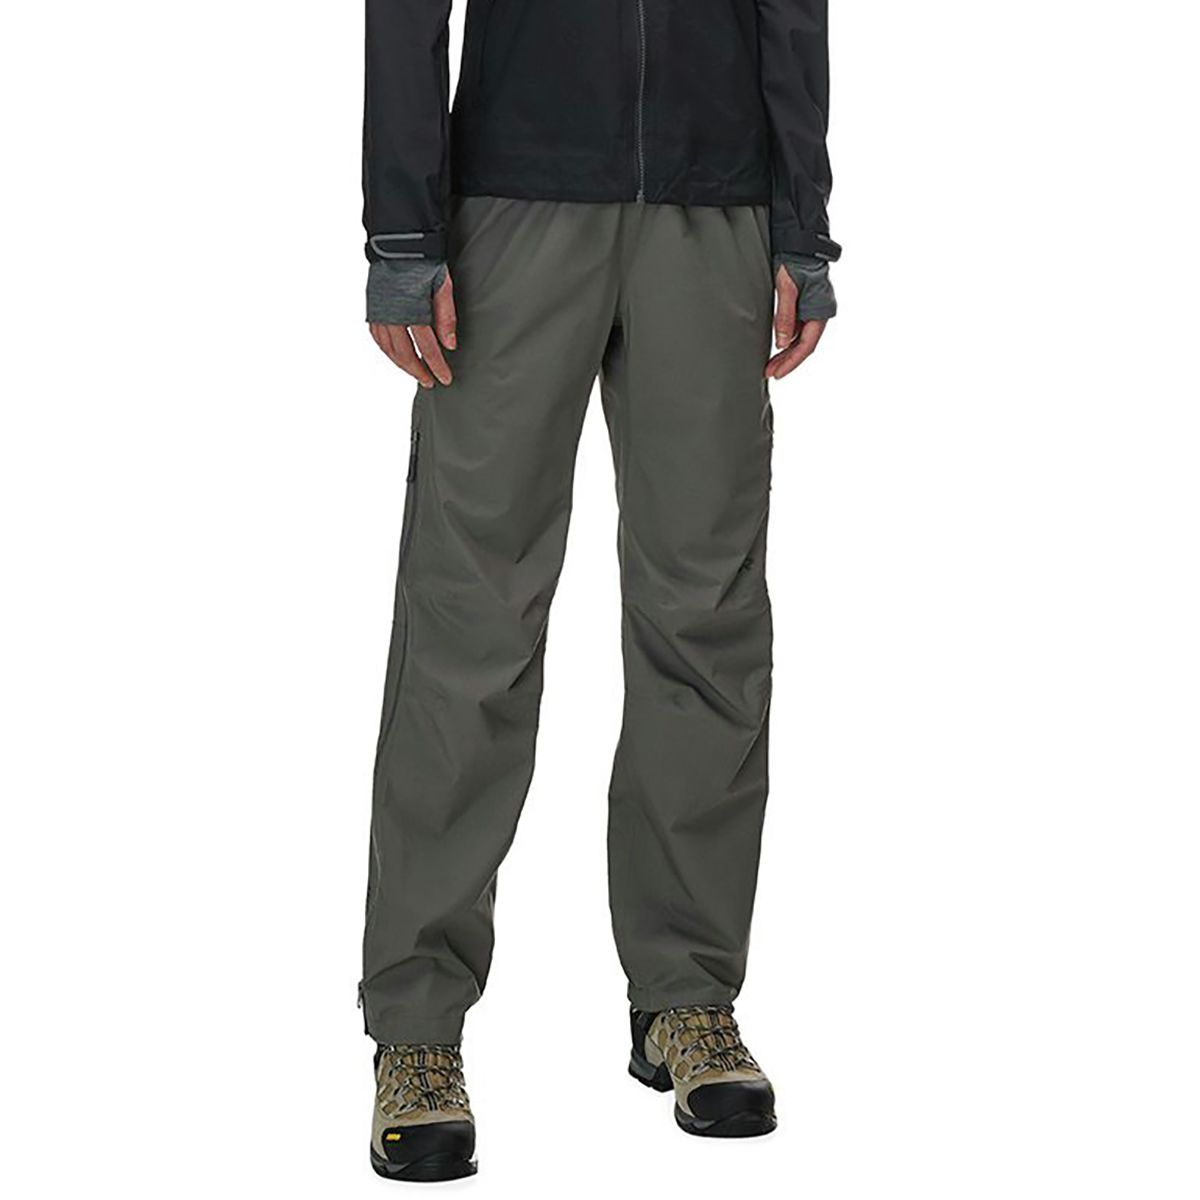 Outdoor Research Aspire Pants